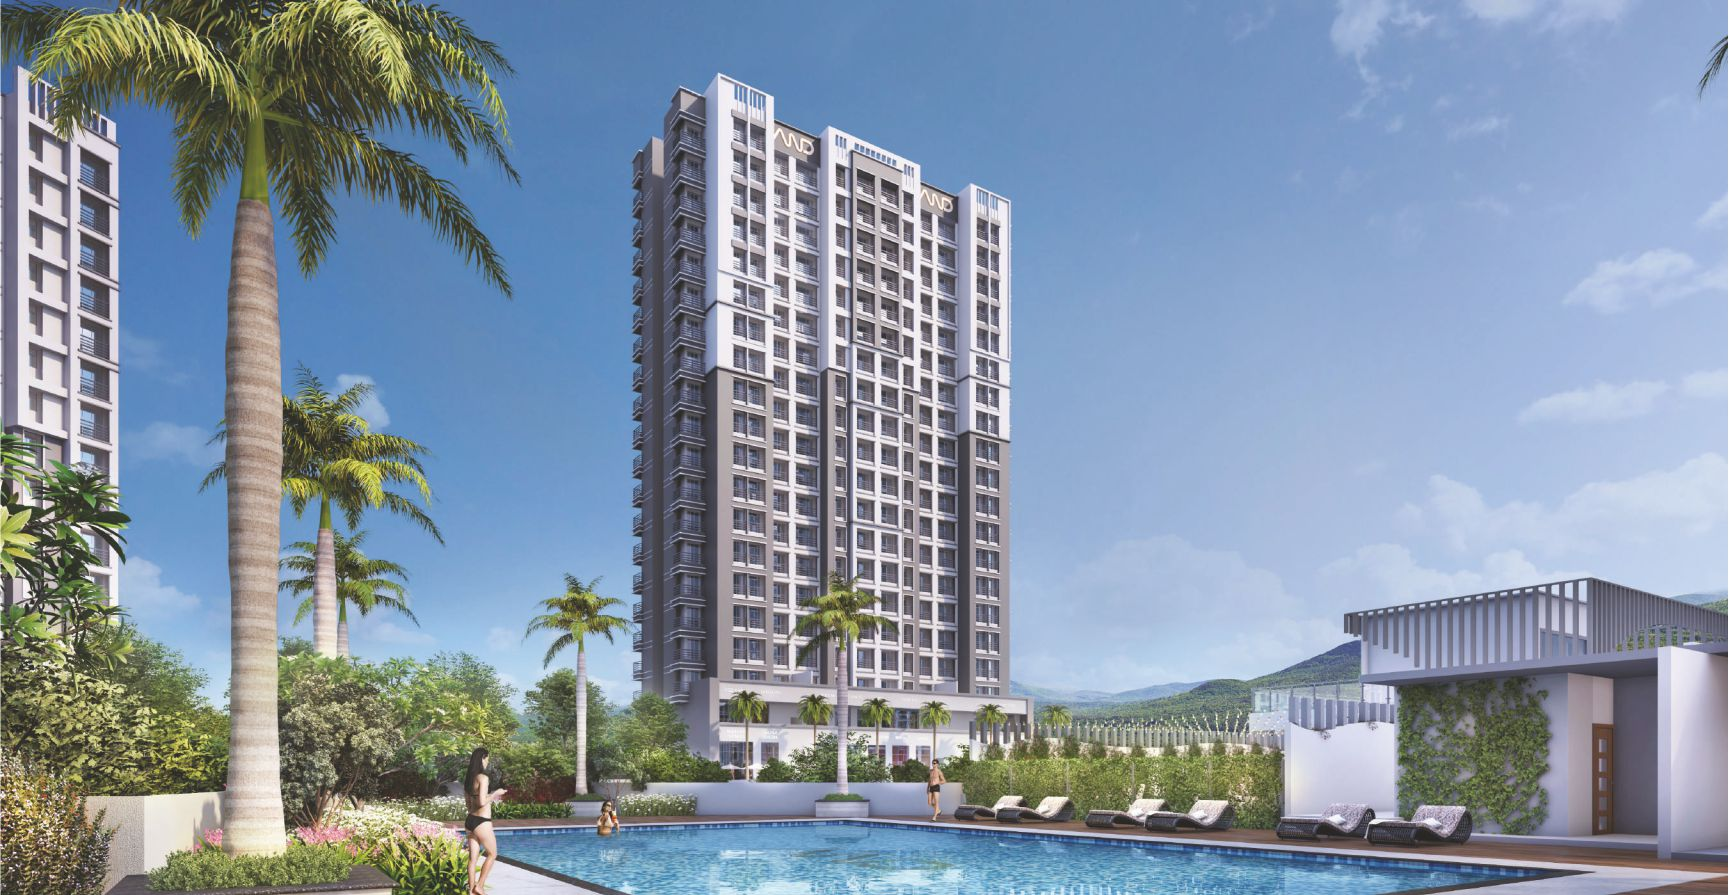 1 & 2 BHK Flats in Diva Mumbai in And Rose - Sqmtrs